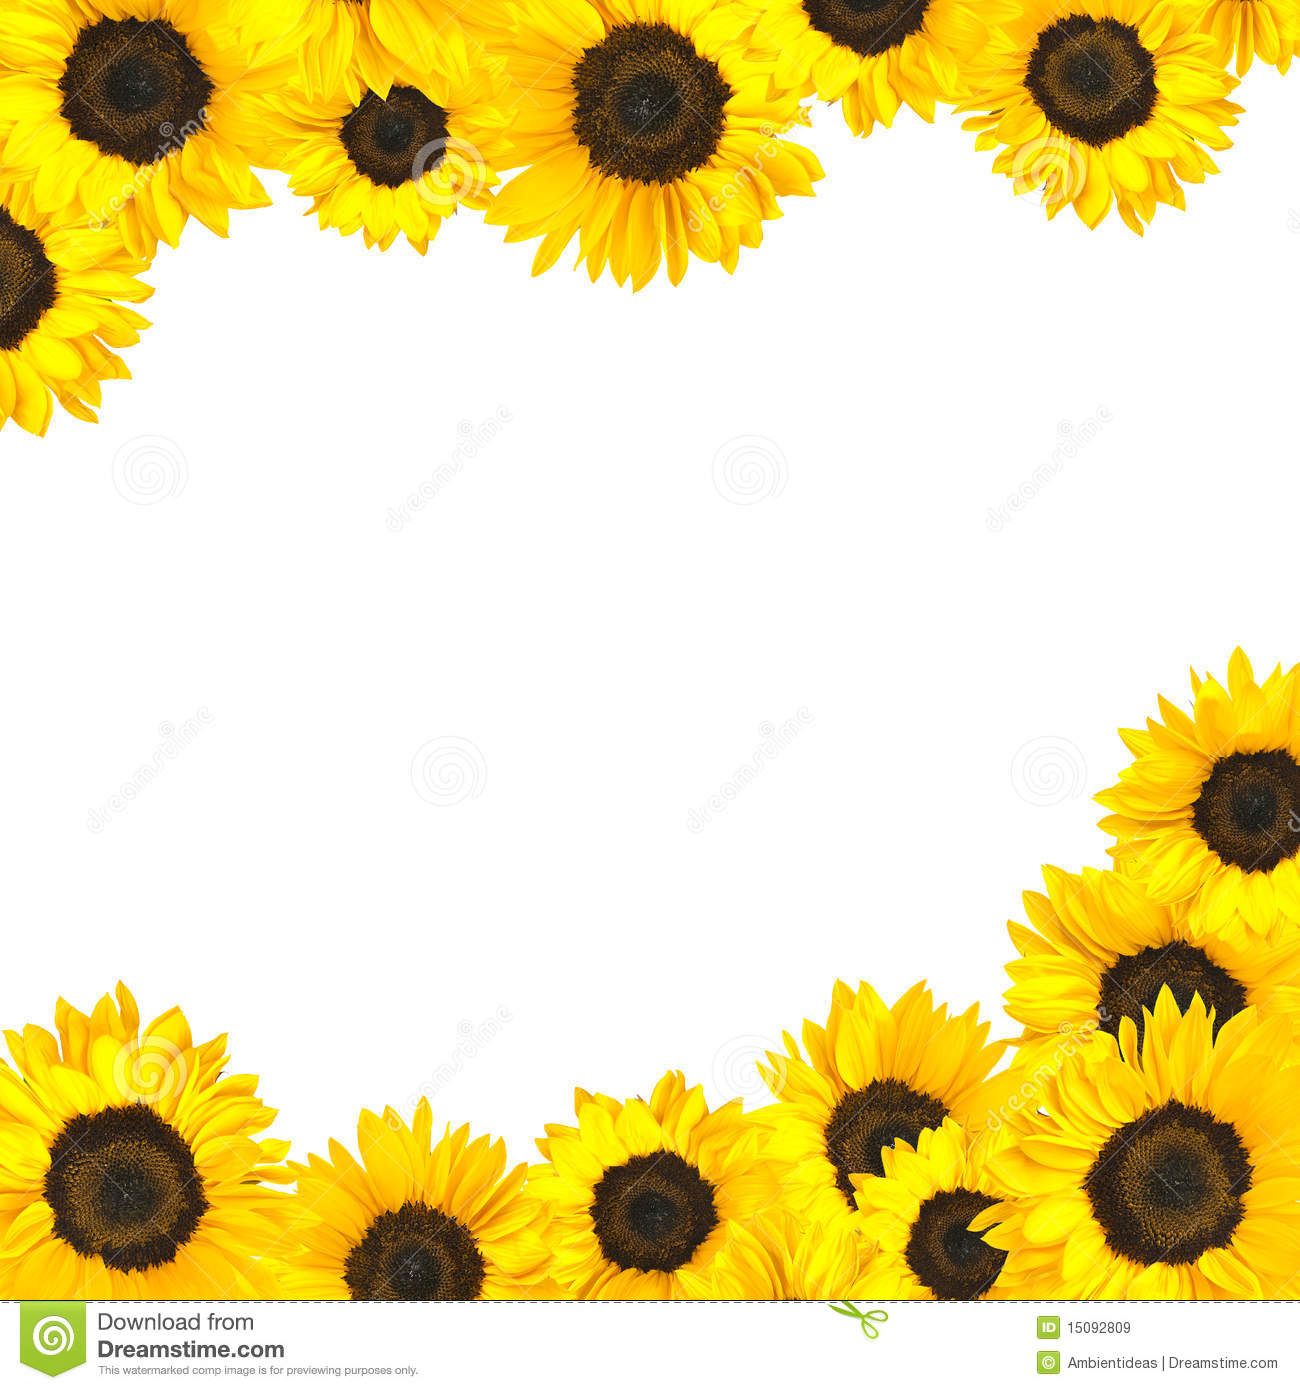 image relating to Sunflower Printable referred to as Sunflower Clipart Absolutely free obtain excellent Sunflower Clipart upon